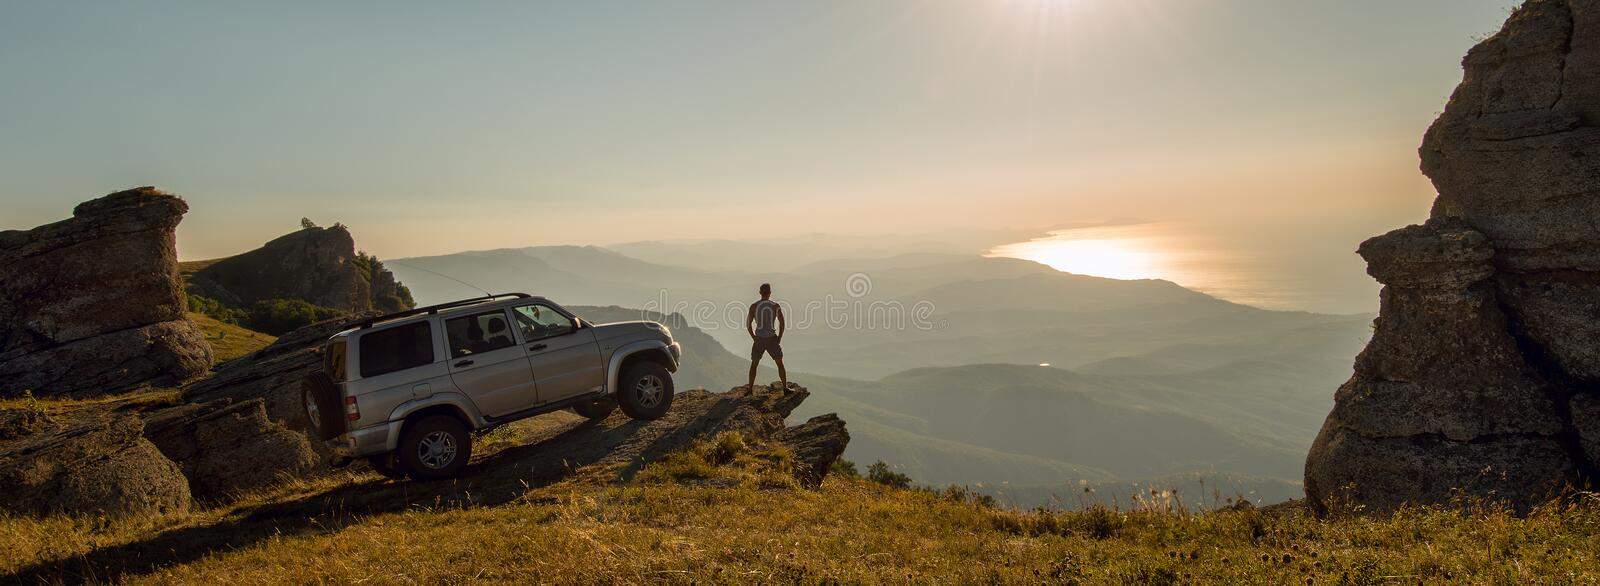 Man with car on beauty nature landscape background royalty free stock photography